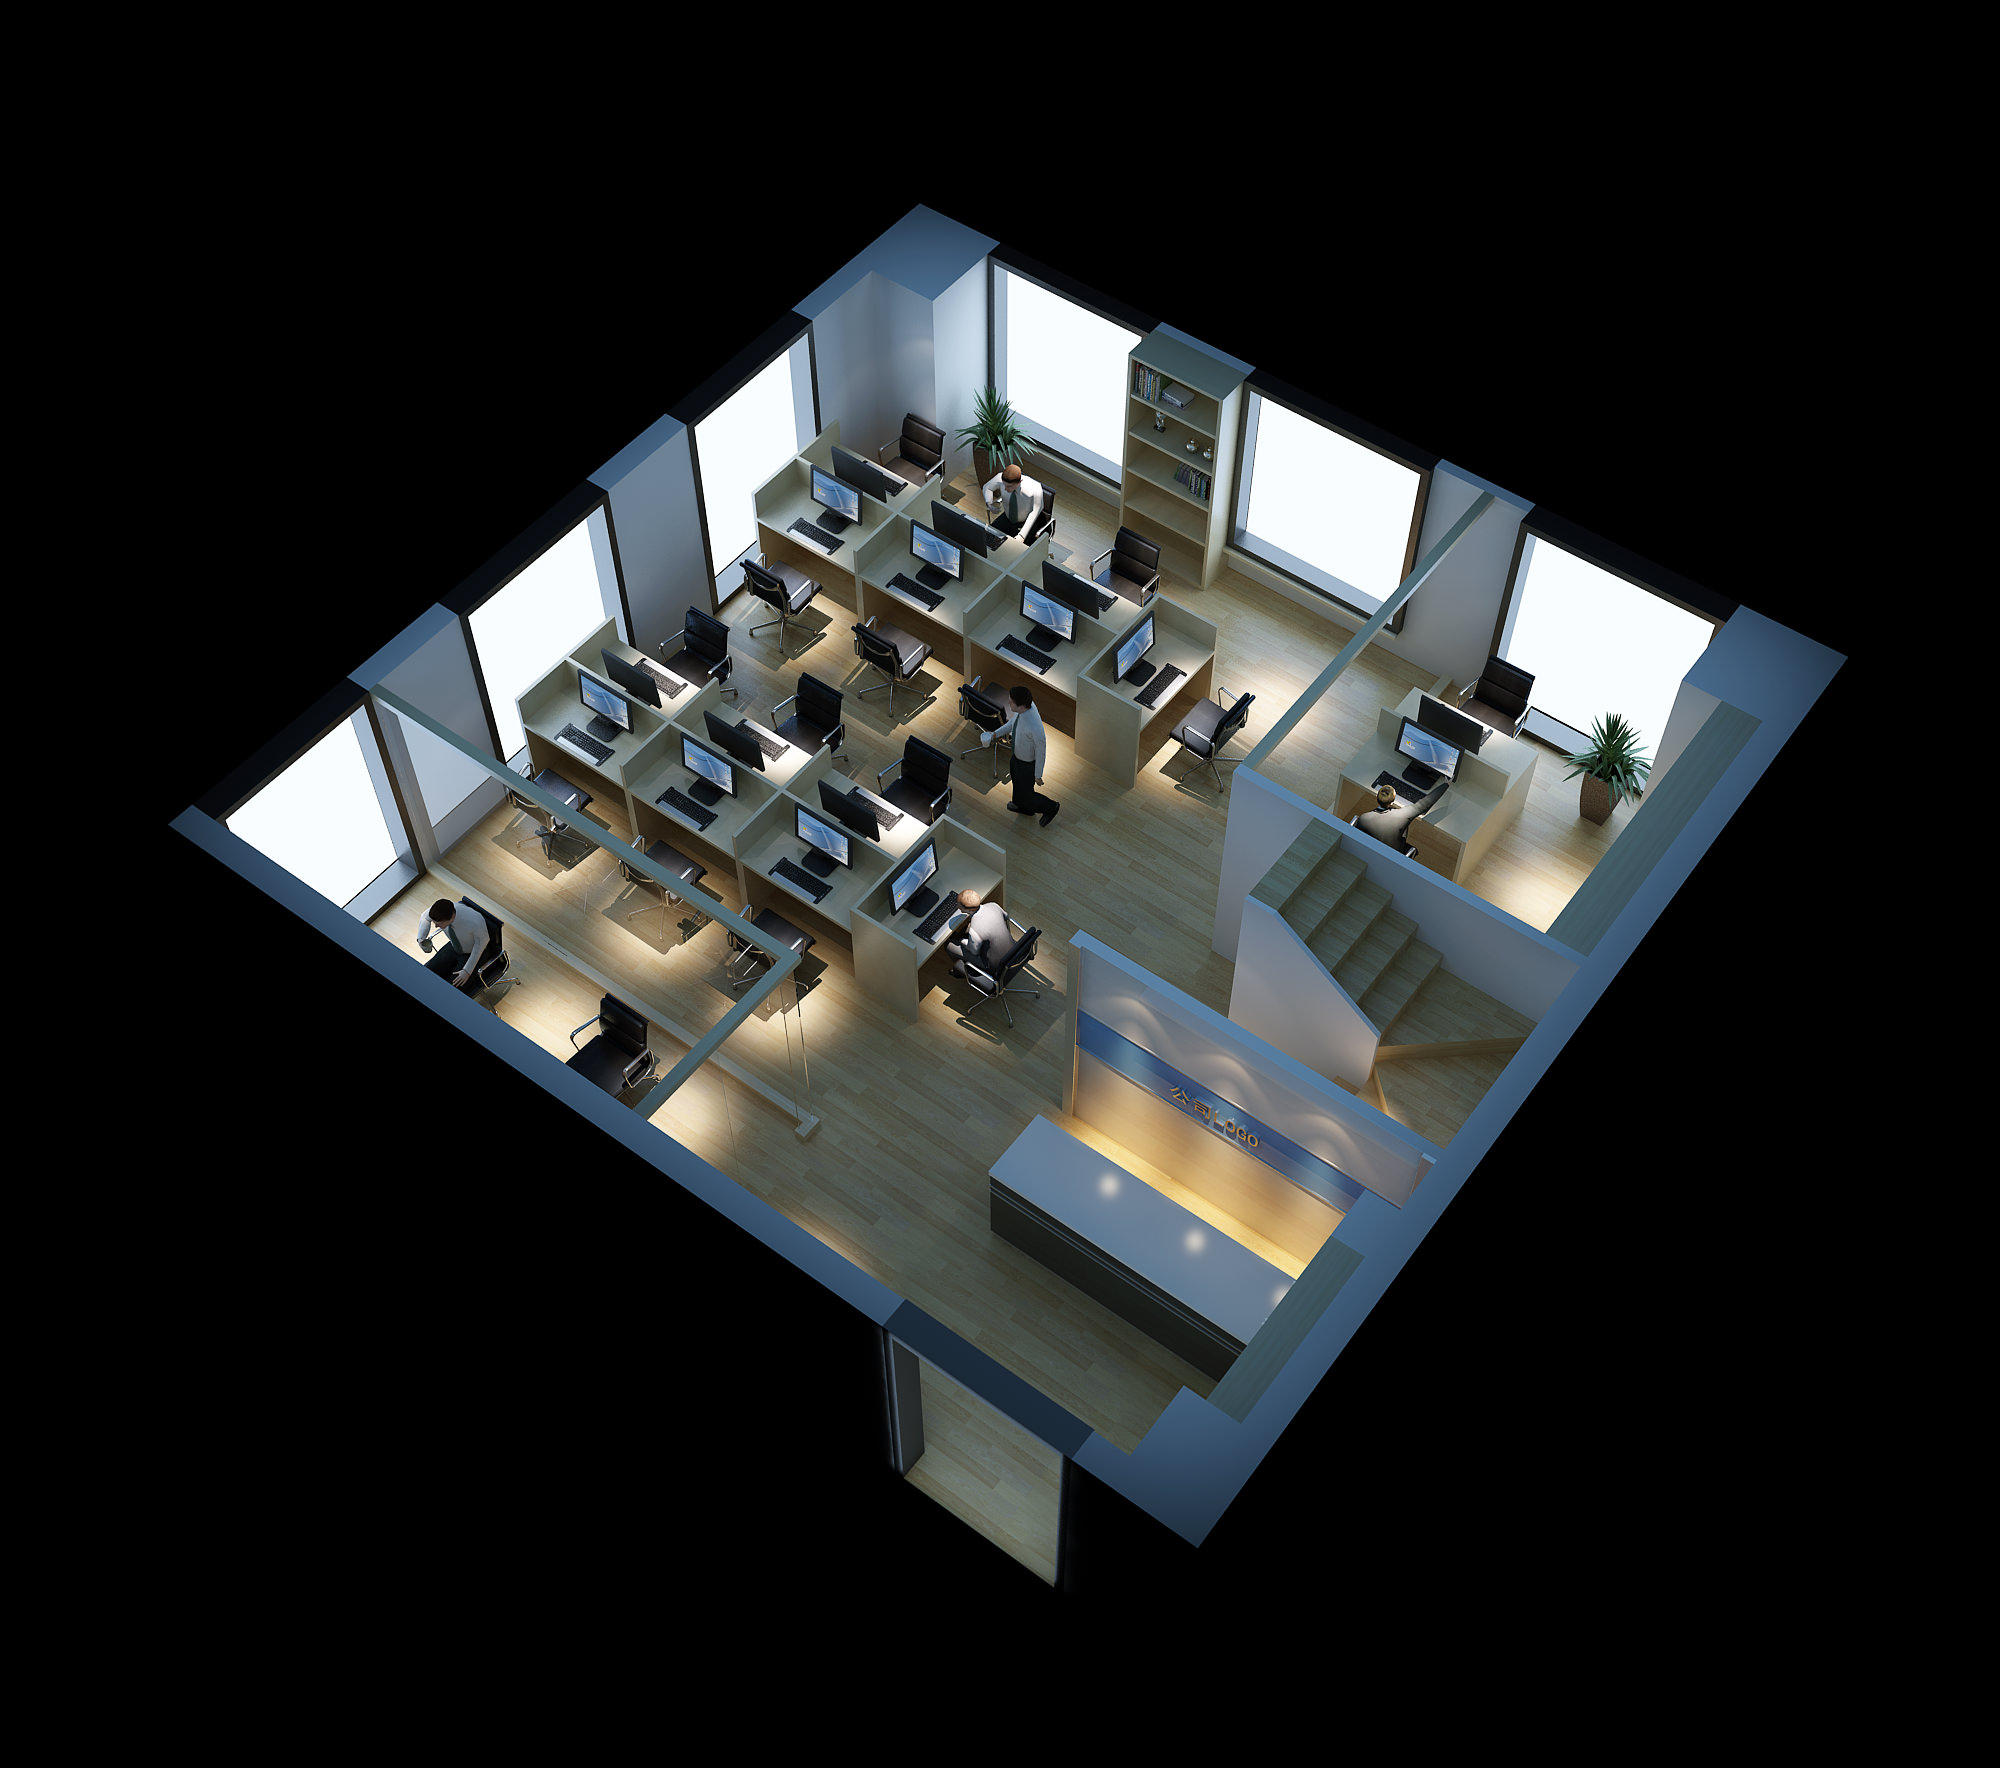 spacious elite office space 3d model max 1 - Office Models Photos